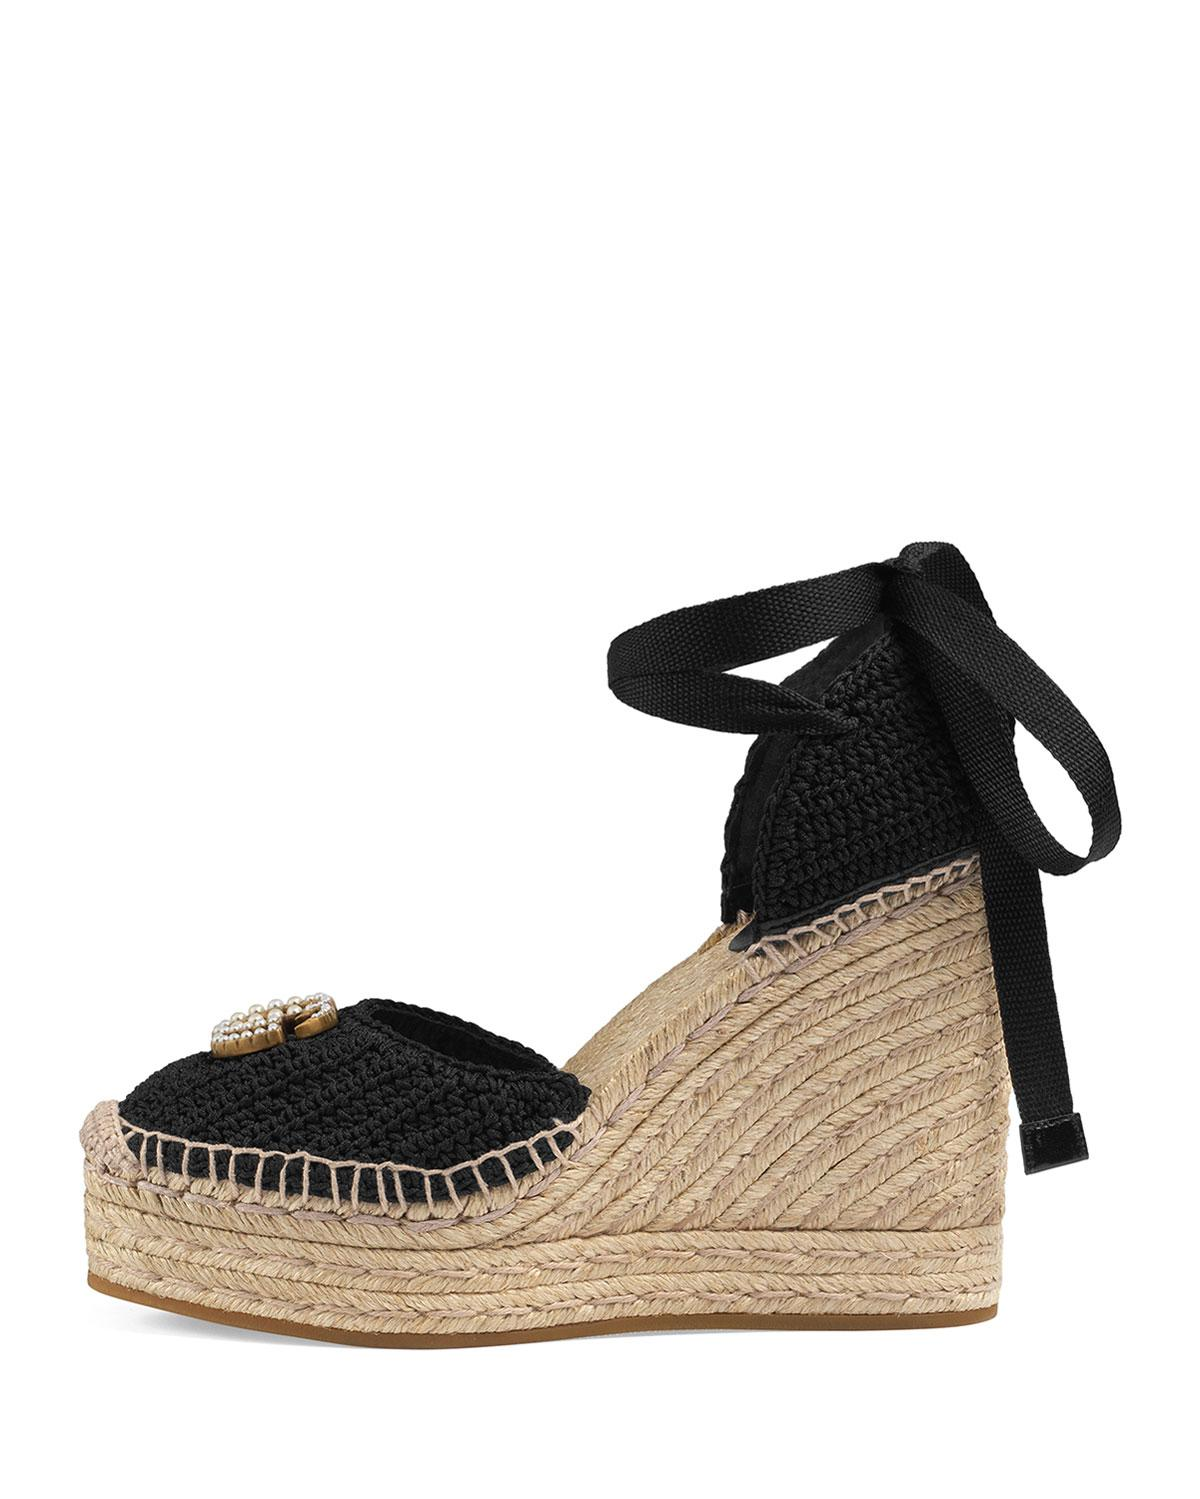 c6bd96667ea8 Lyst - Gucci Crochet Wedge Espadrilles in Black - Save 1%